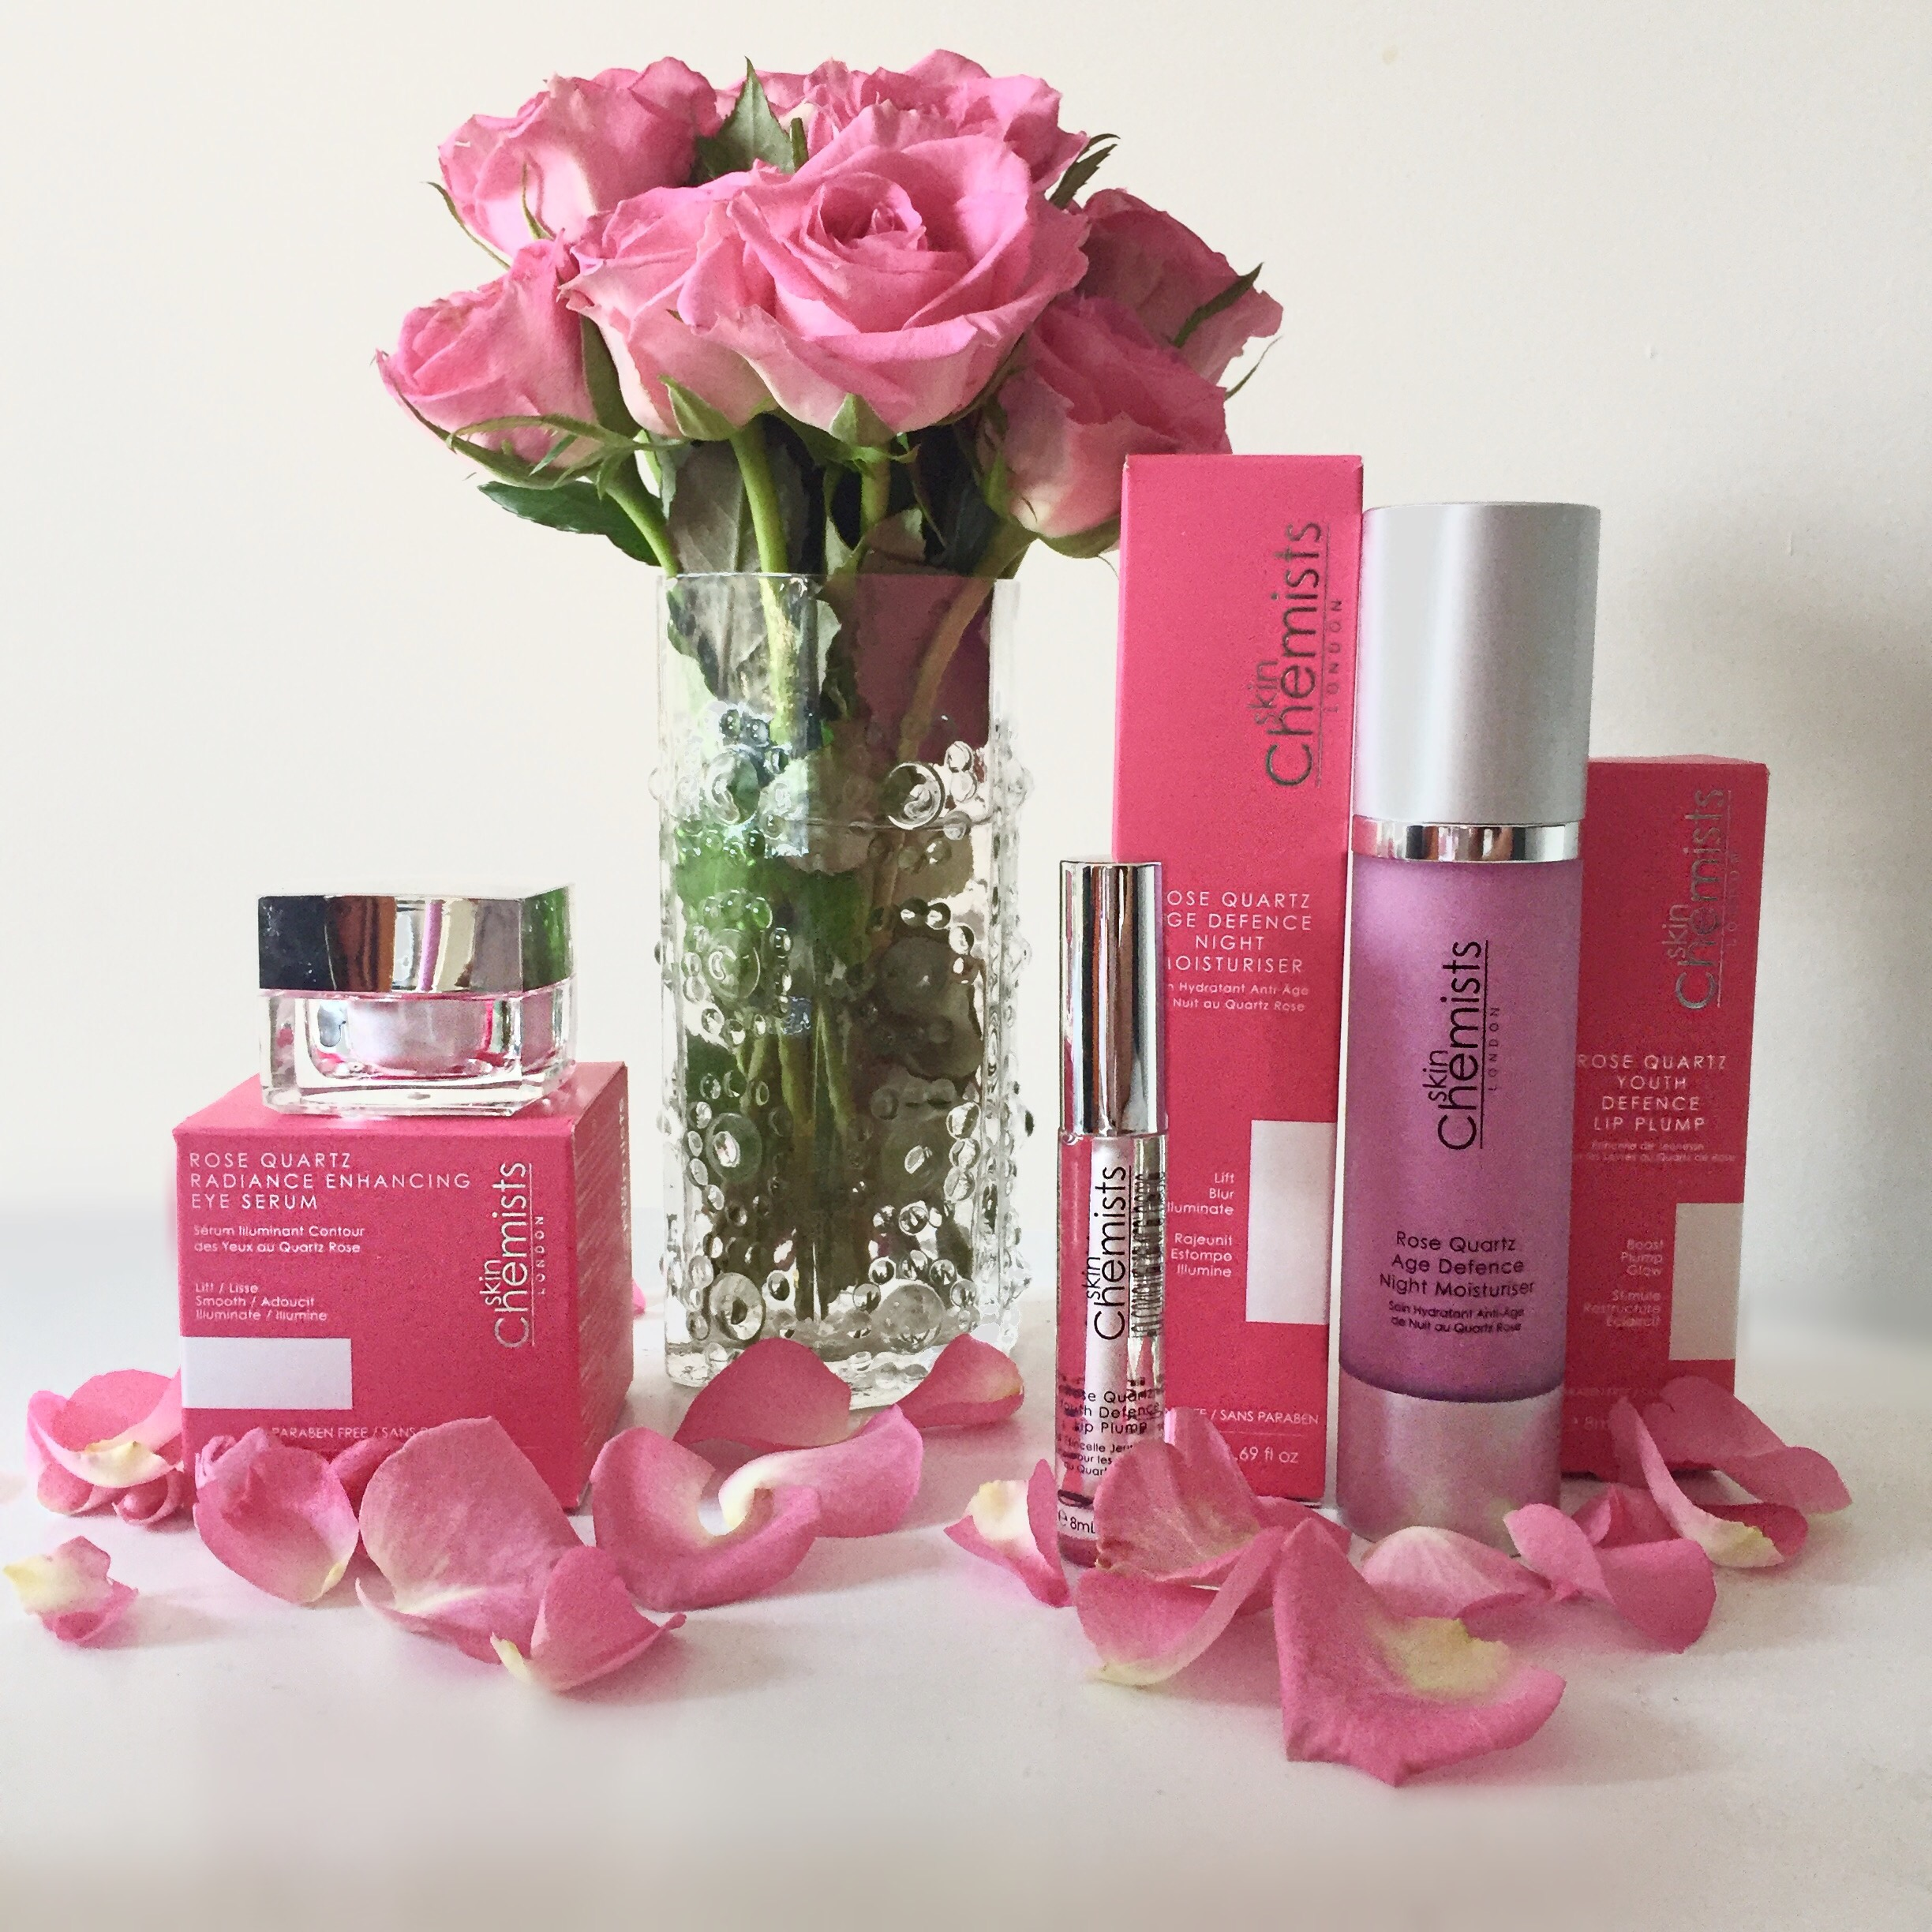 Skin Chemists Rose Quartz range via beauty blog Always a Blue Sky Girl blogger blueskygirlie